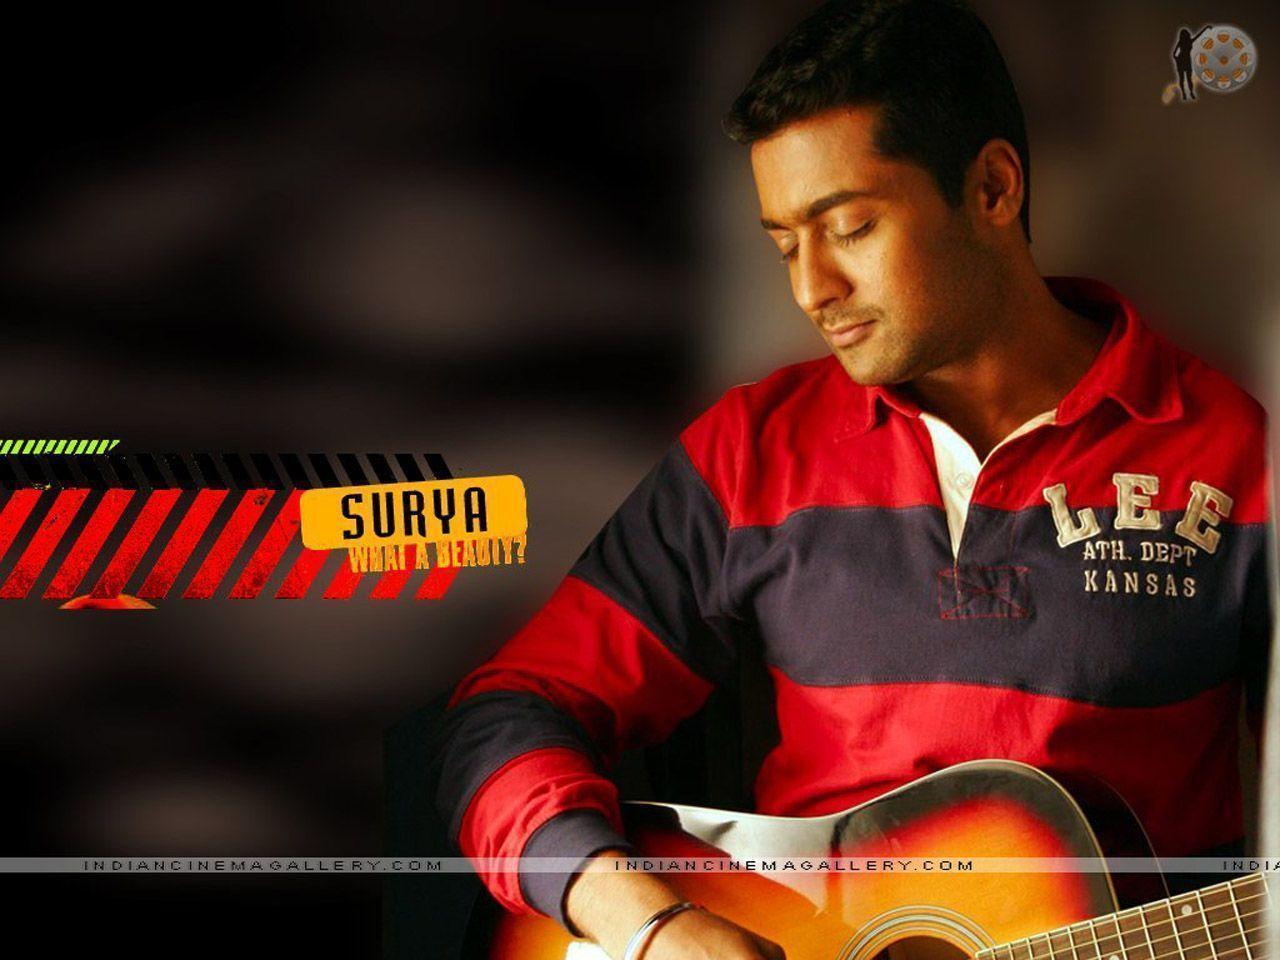 Surya Hd Wallpapers 2016: Surya Wallpapers